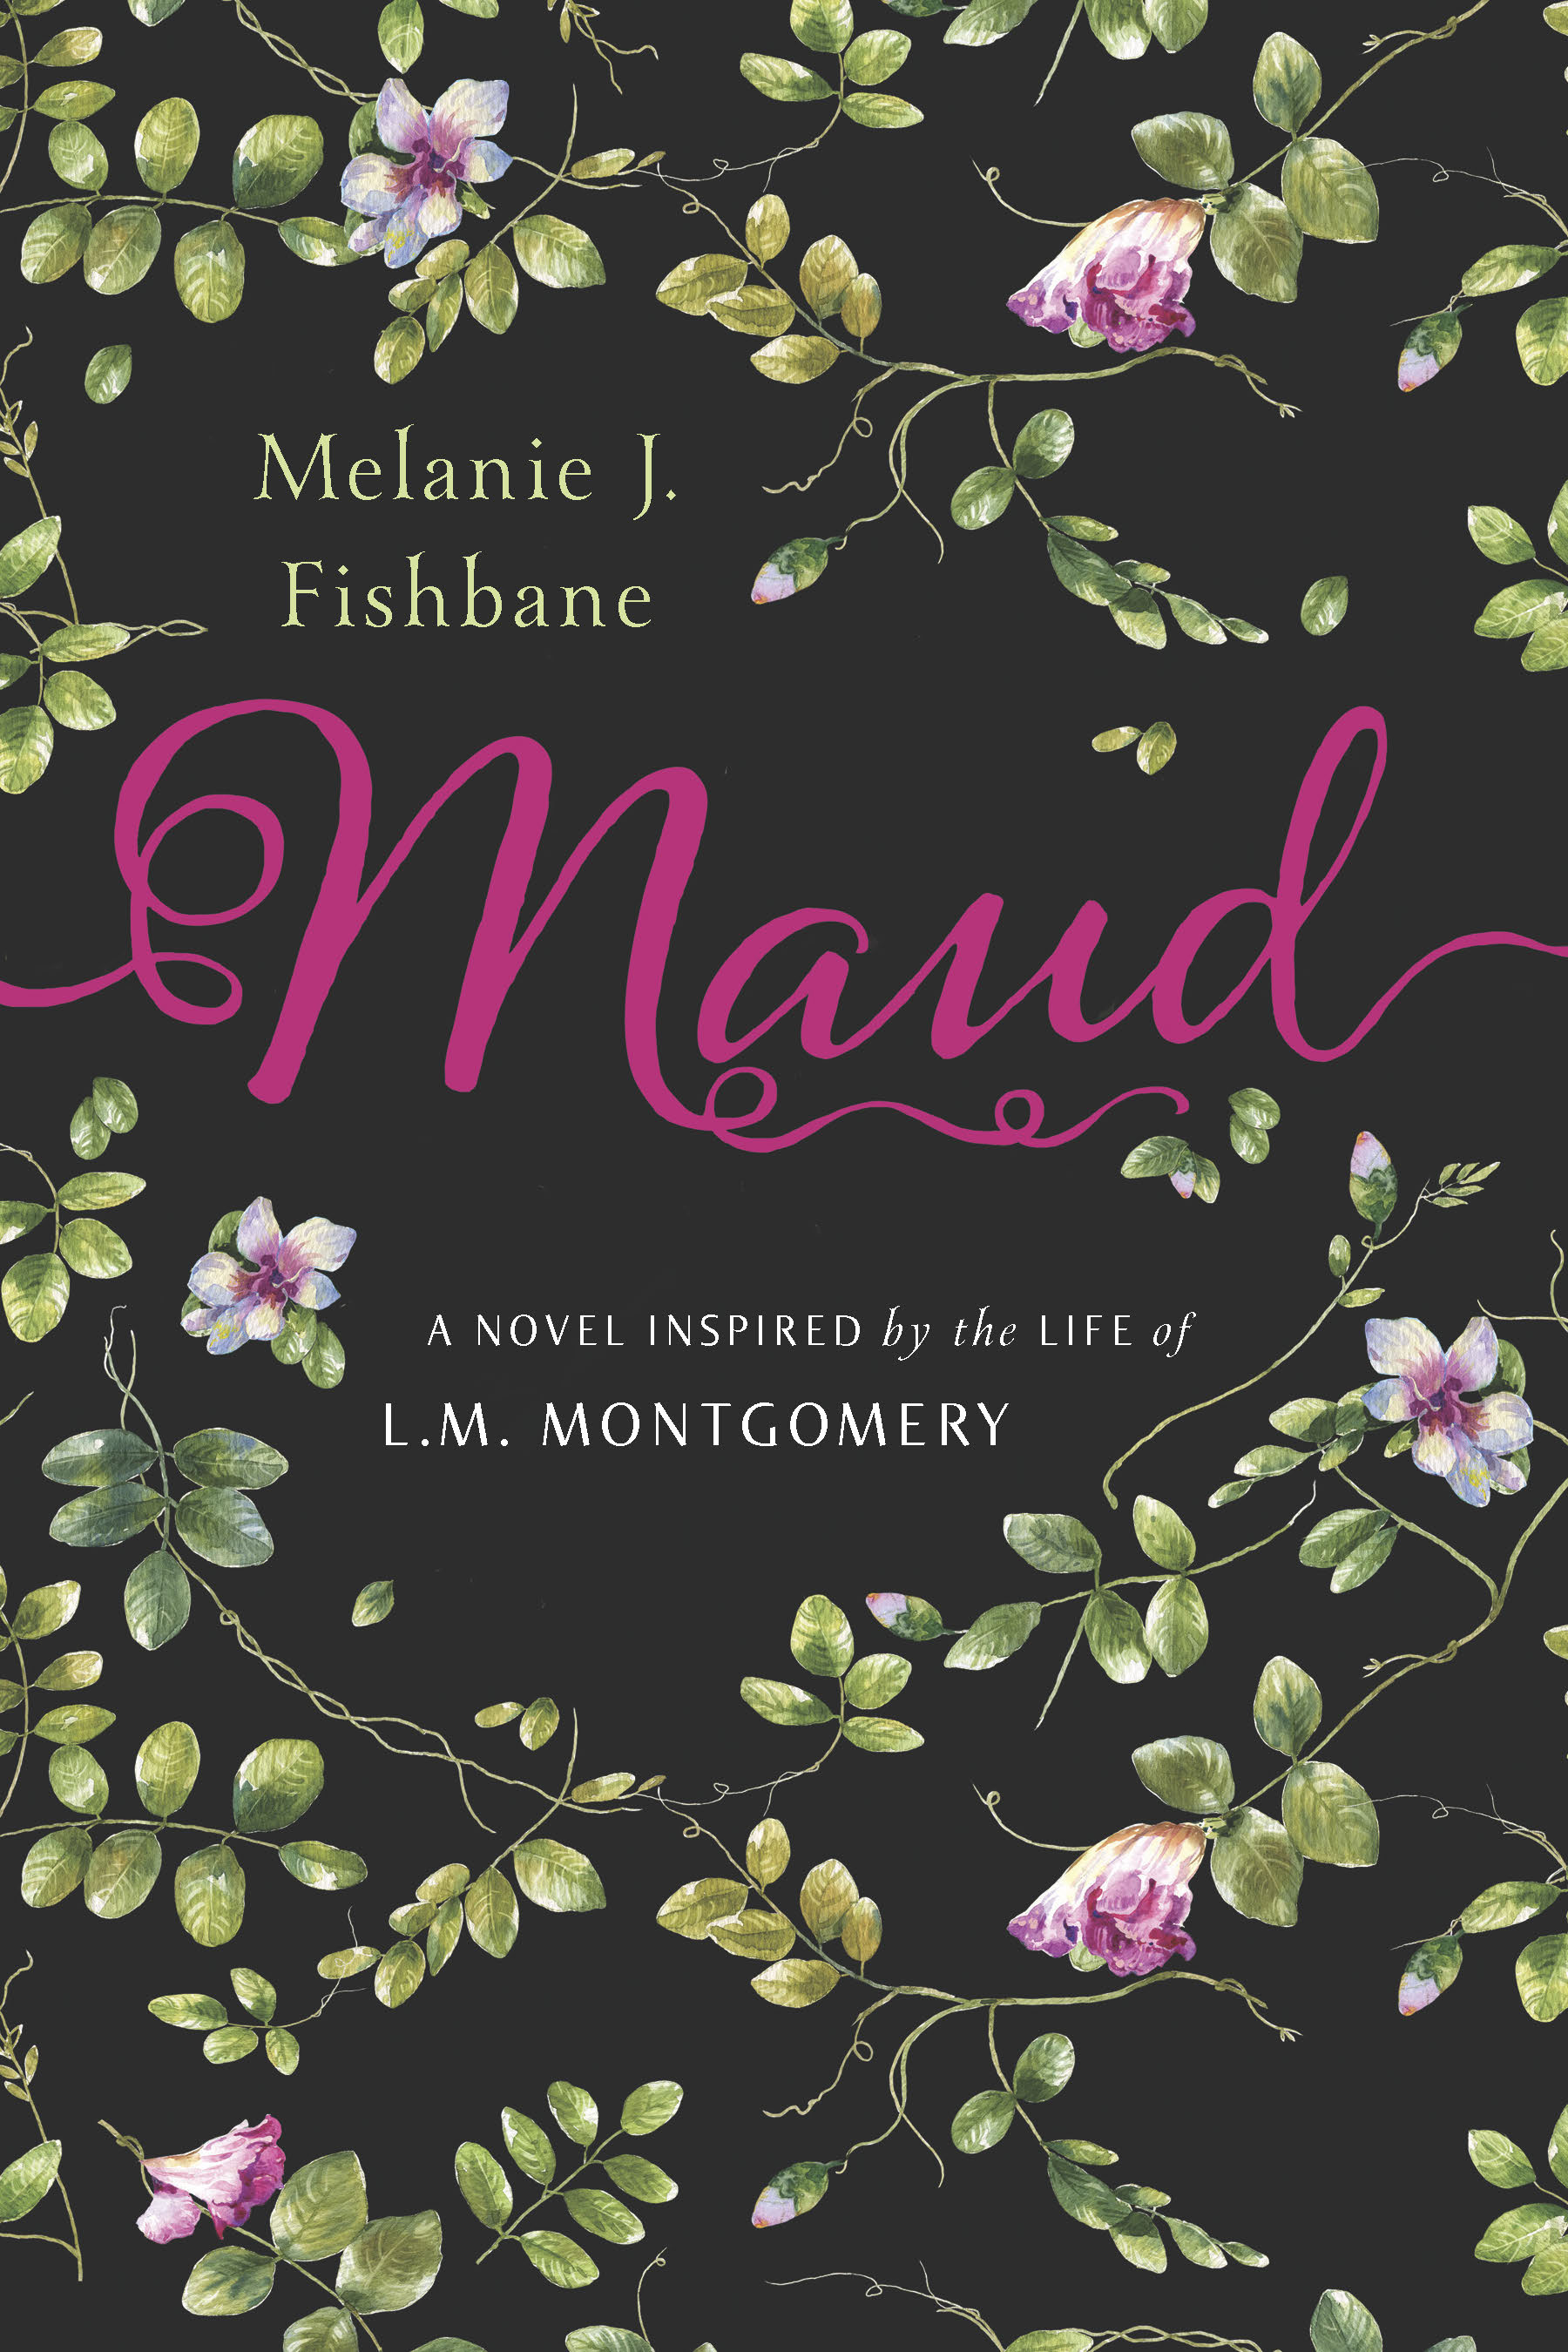 Rt to win a signed arc of maud melanie j fishbane november 30th is lm montgomerys 142nd birthday and to celebrate ive decided to give away one signed arc of maud a novel inspired by the life of lm izmirmasajfo